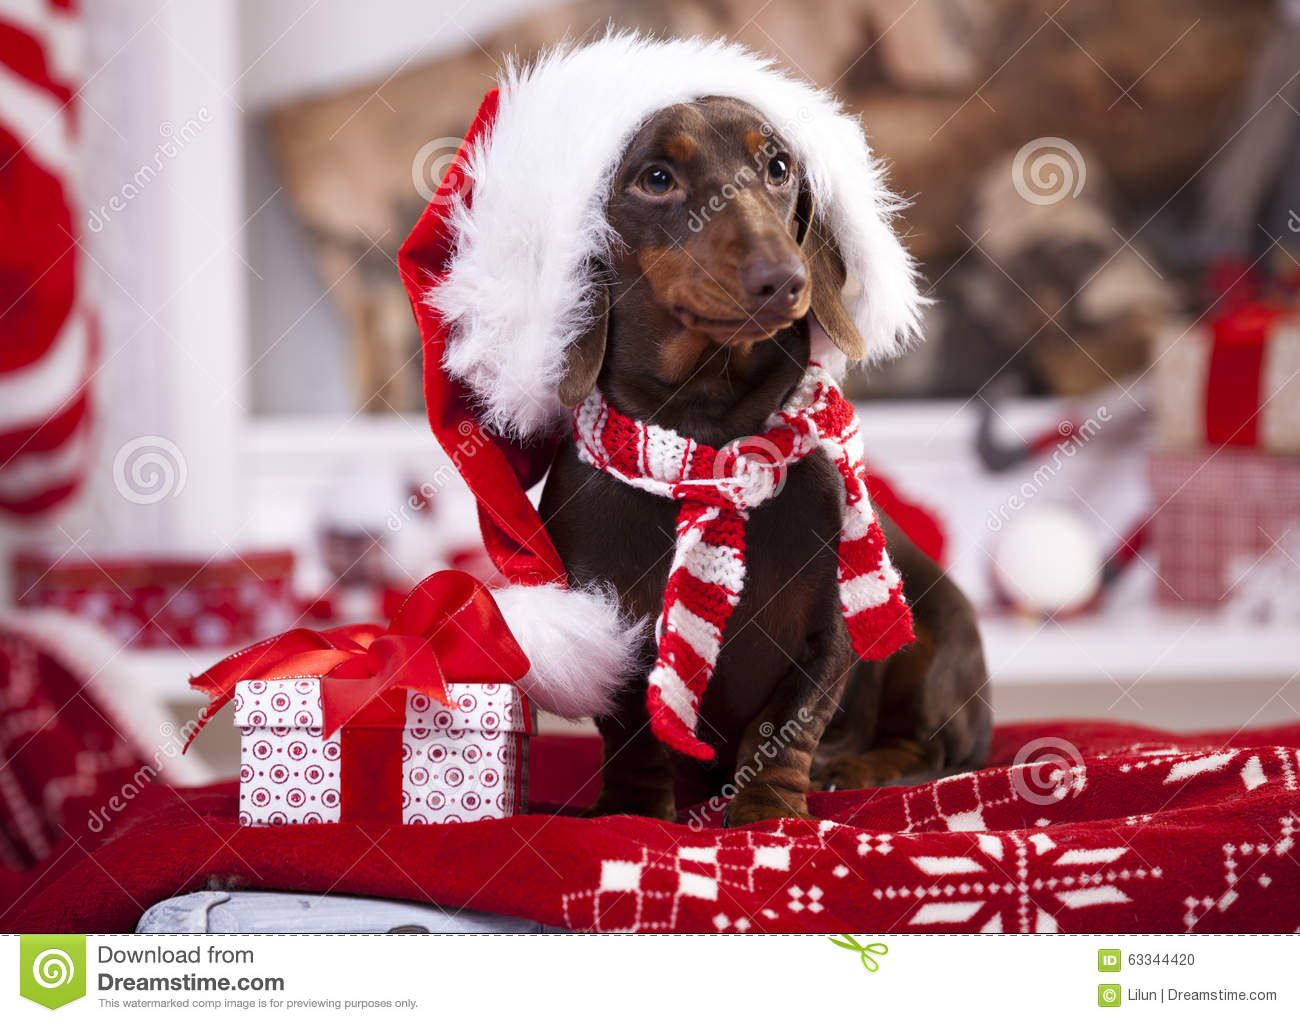 Cute Dachshund Wallpaper Christmas Puppy Stock Photo Image Of Dogs Gift